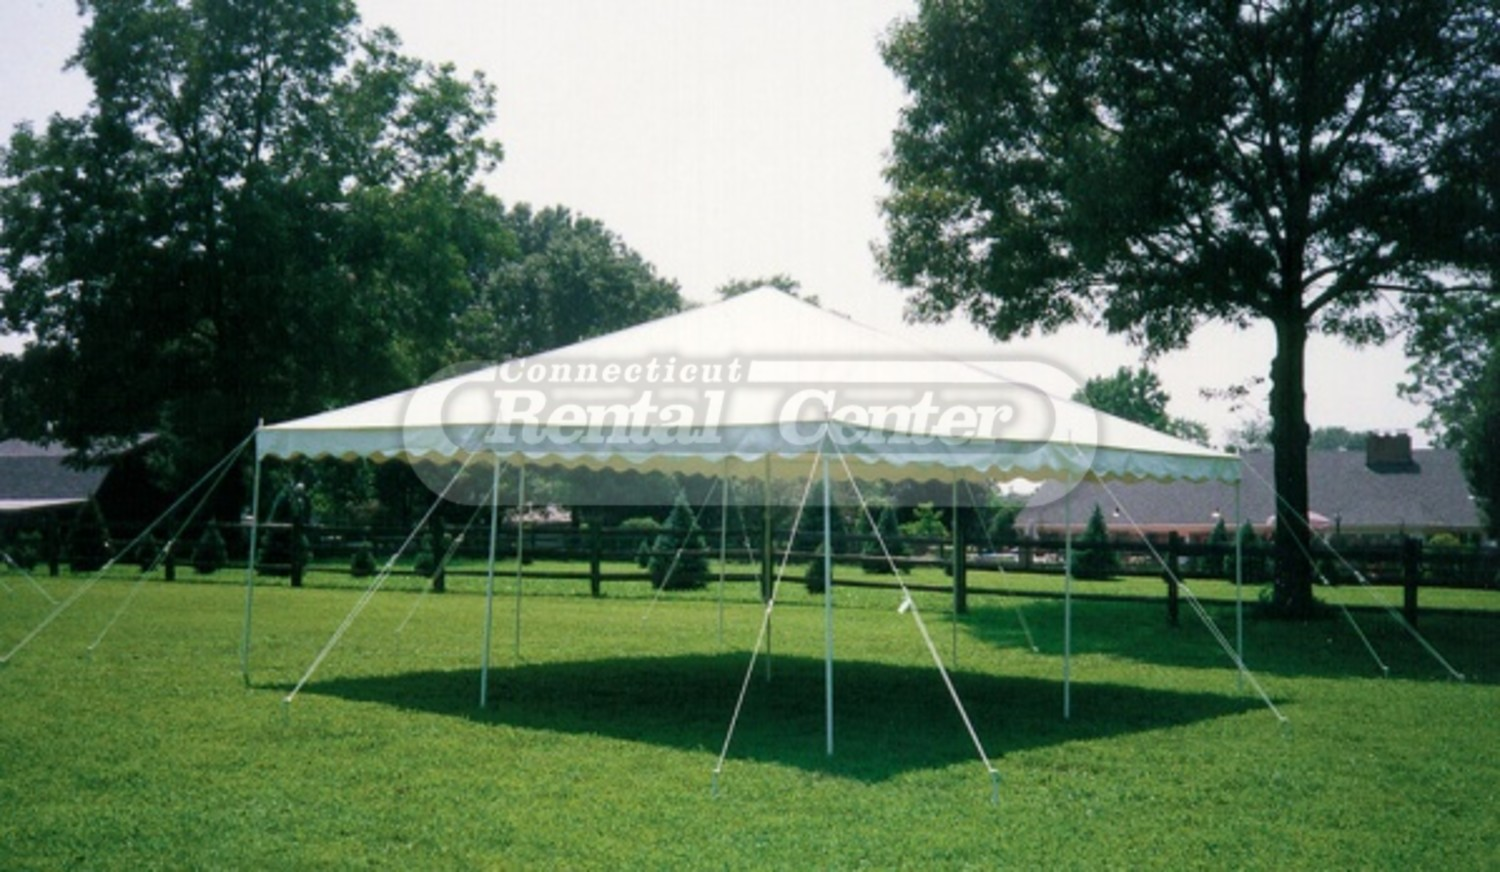 & Rent 20 x 20 Self Install Canopy Tents from CT Rental Center